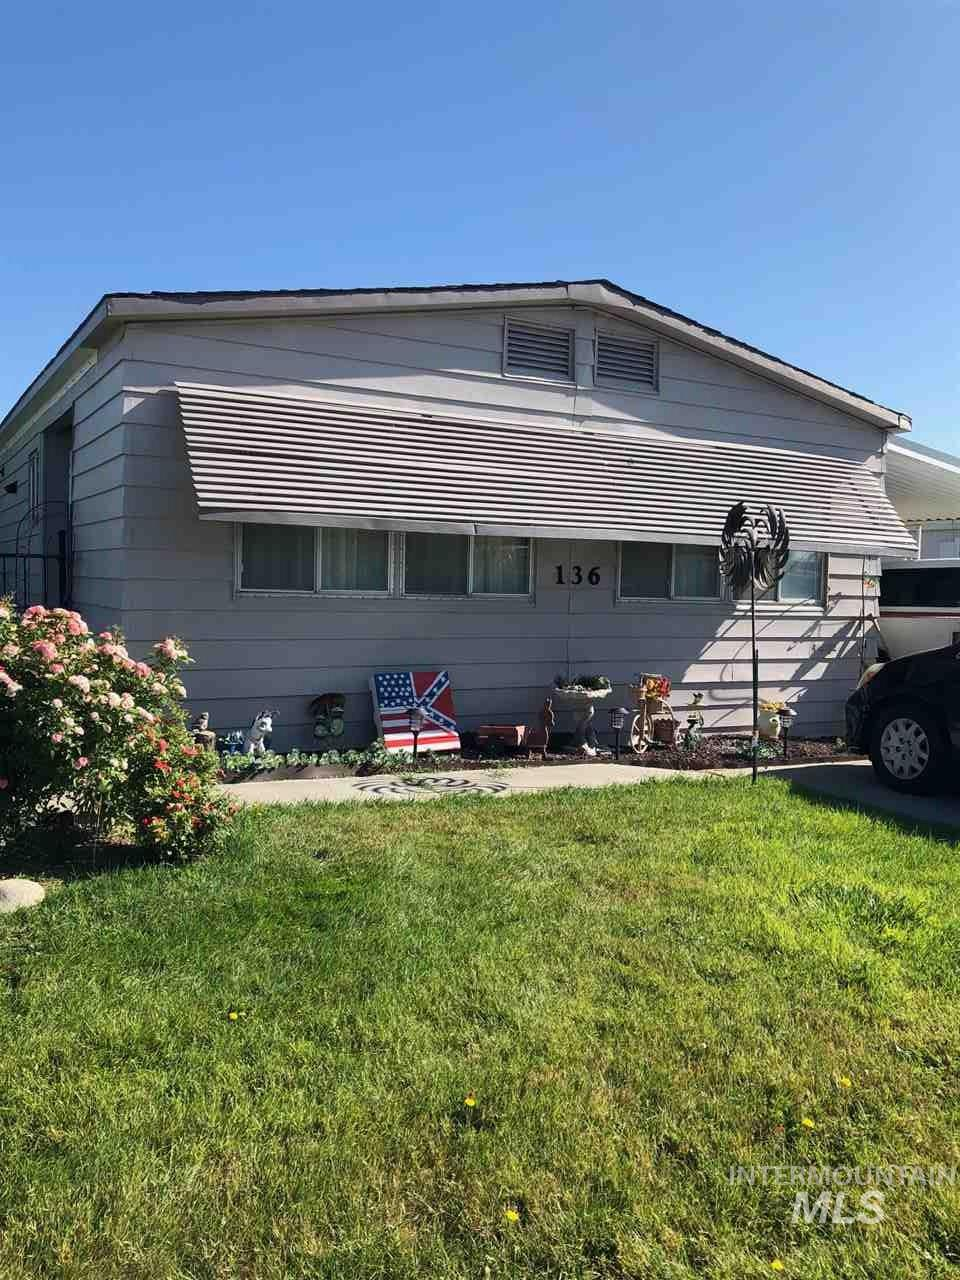 450 Pole Line Rd, Twin Falls, Idaho 83301, 3 Bedrooms, 2 Bathrooms, Residential For Sale, Price $25,000, 98740848